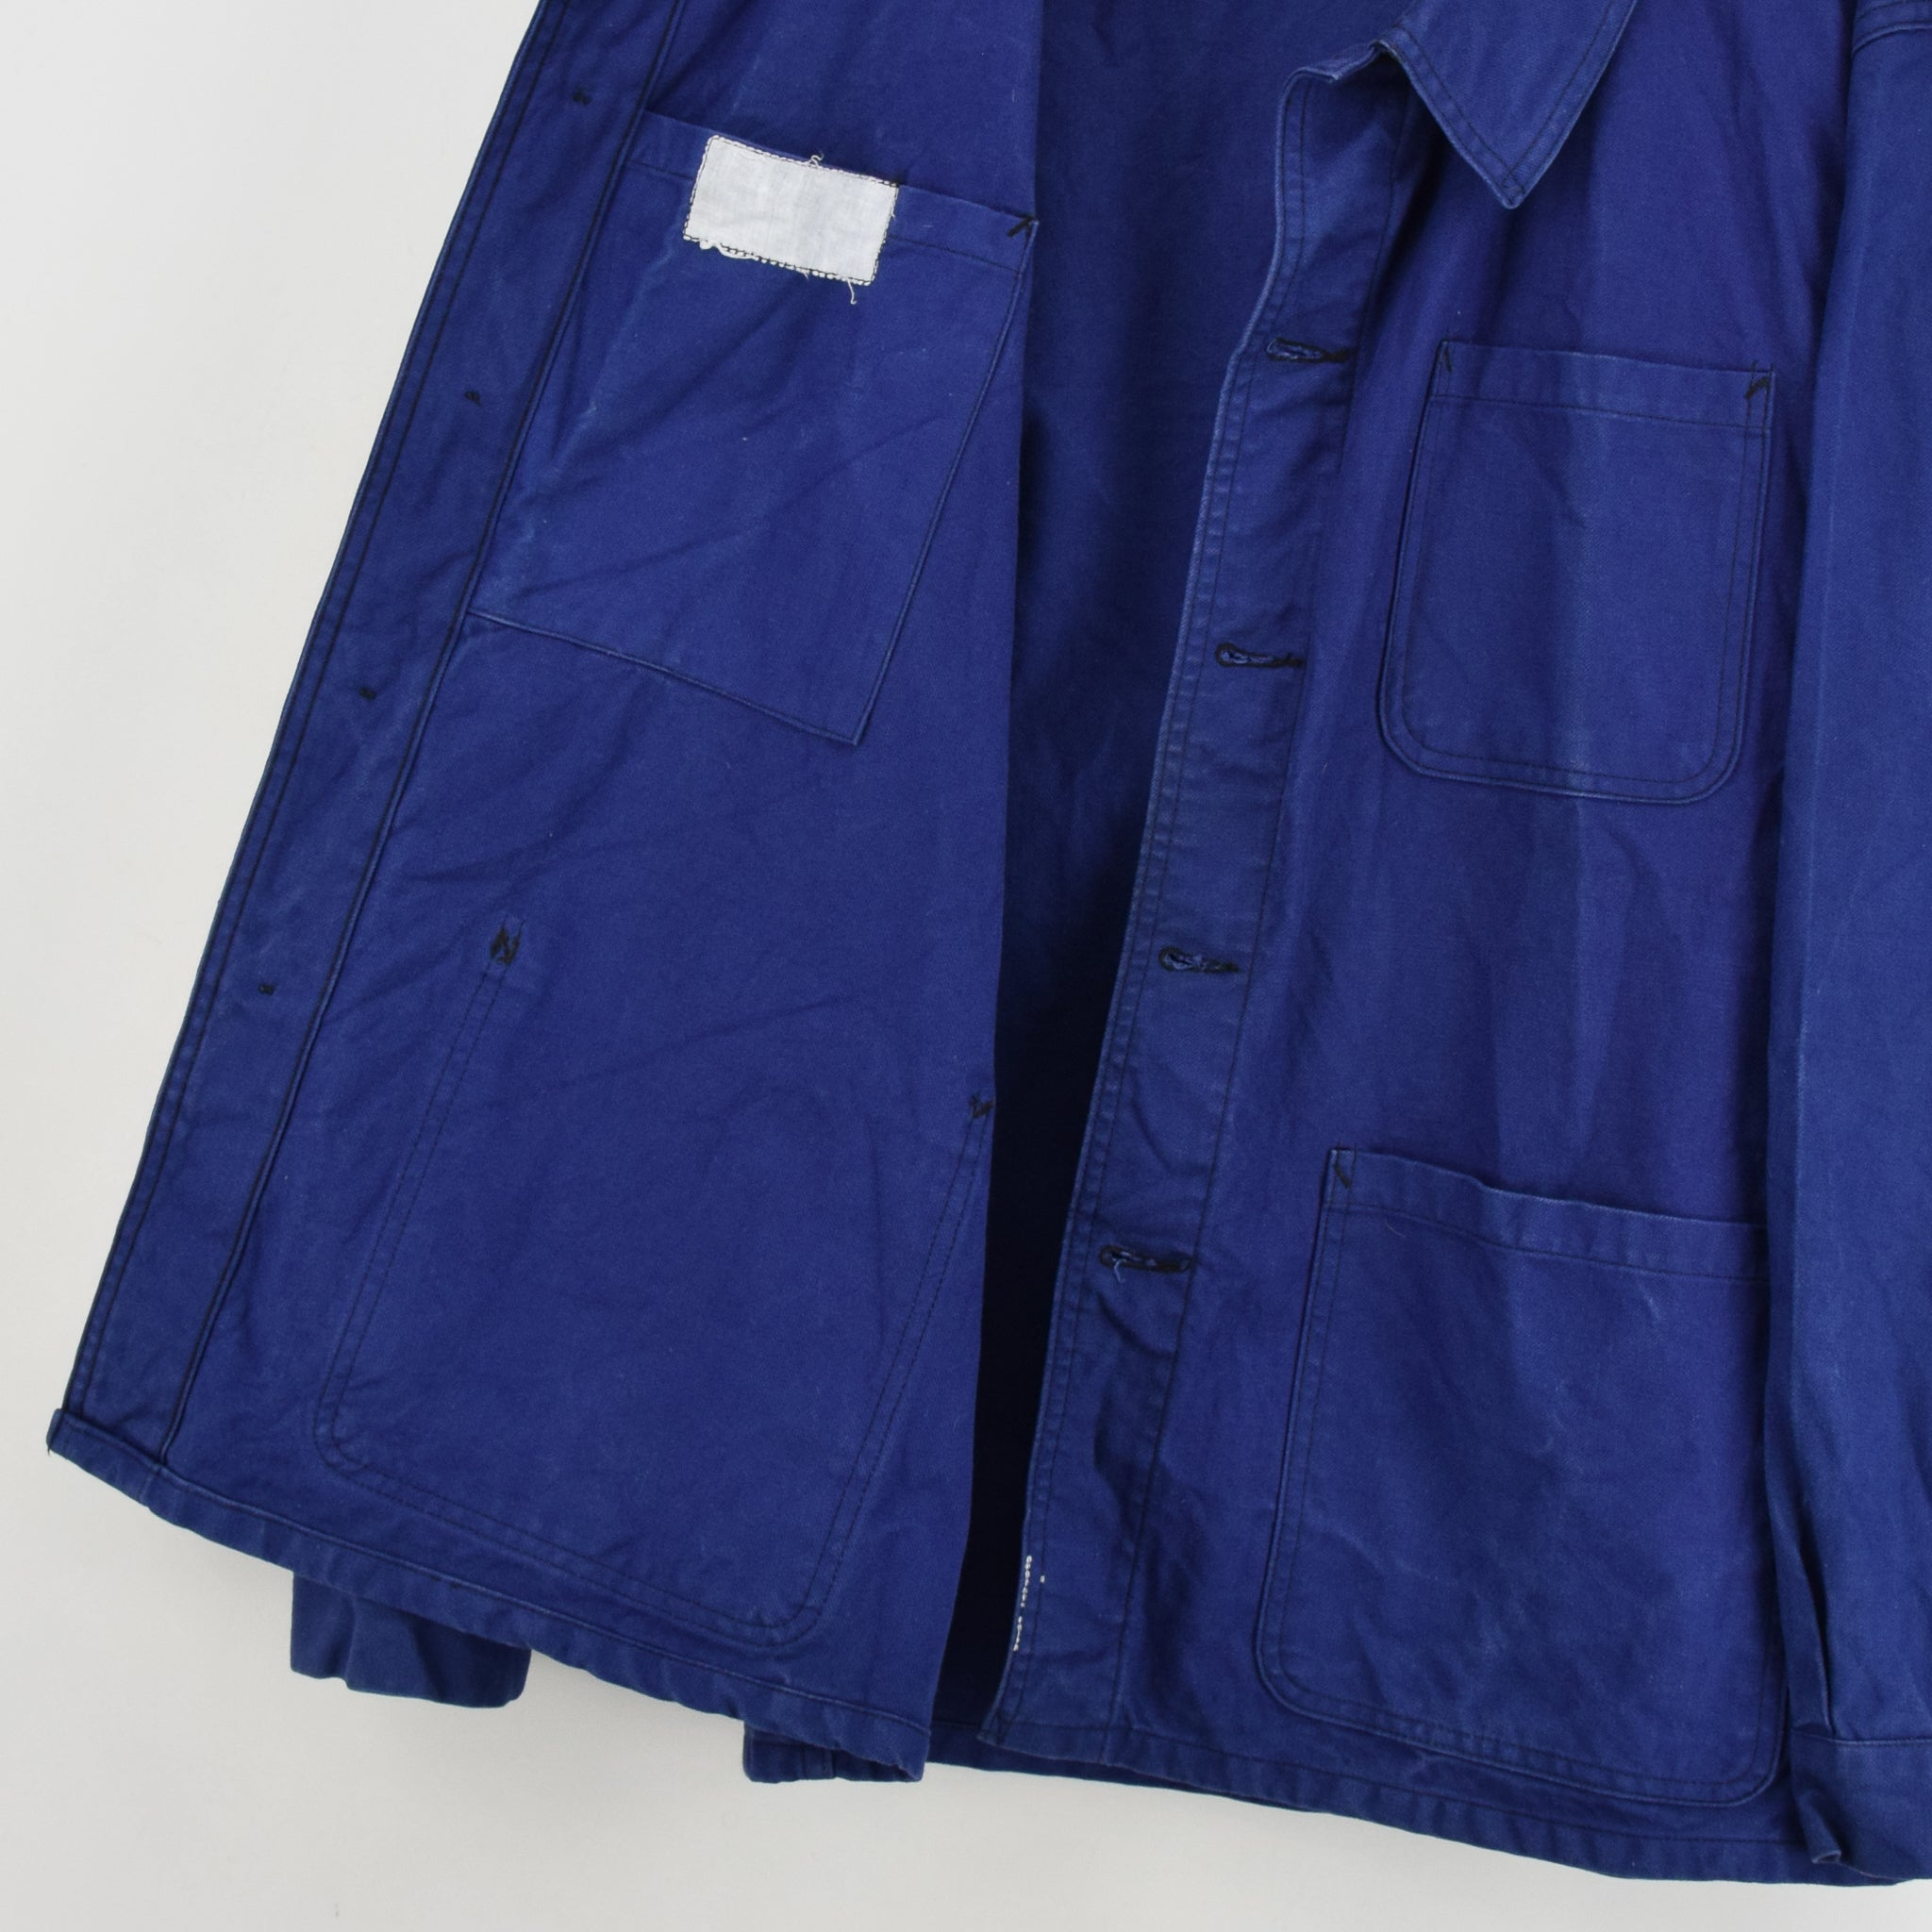 Vintage Indigo Blue French Worker Sanforized Cotton Chore Jacket L internal label lining